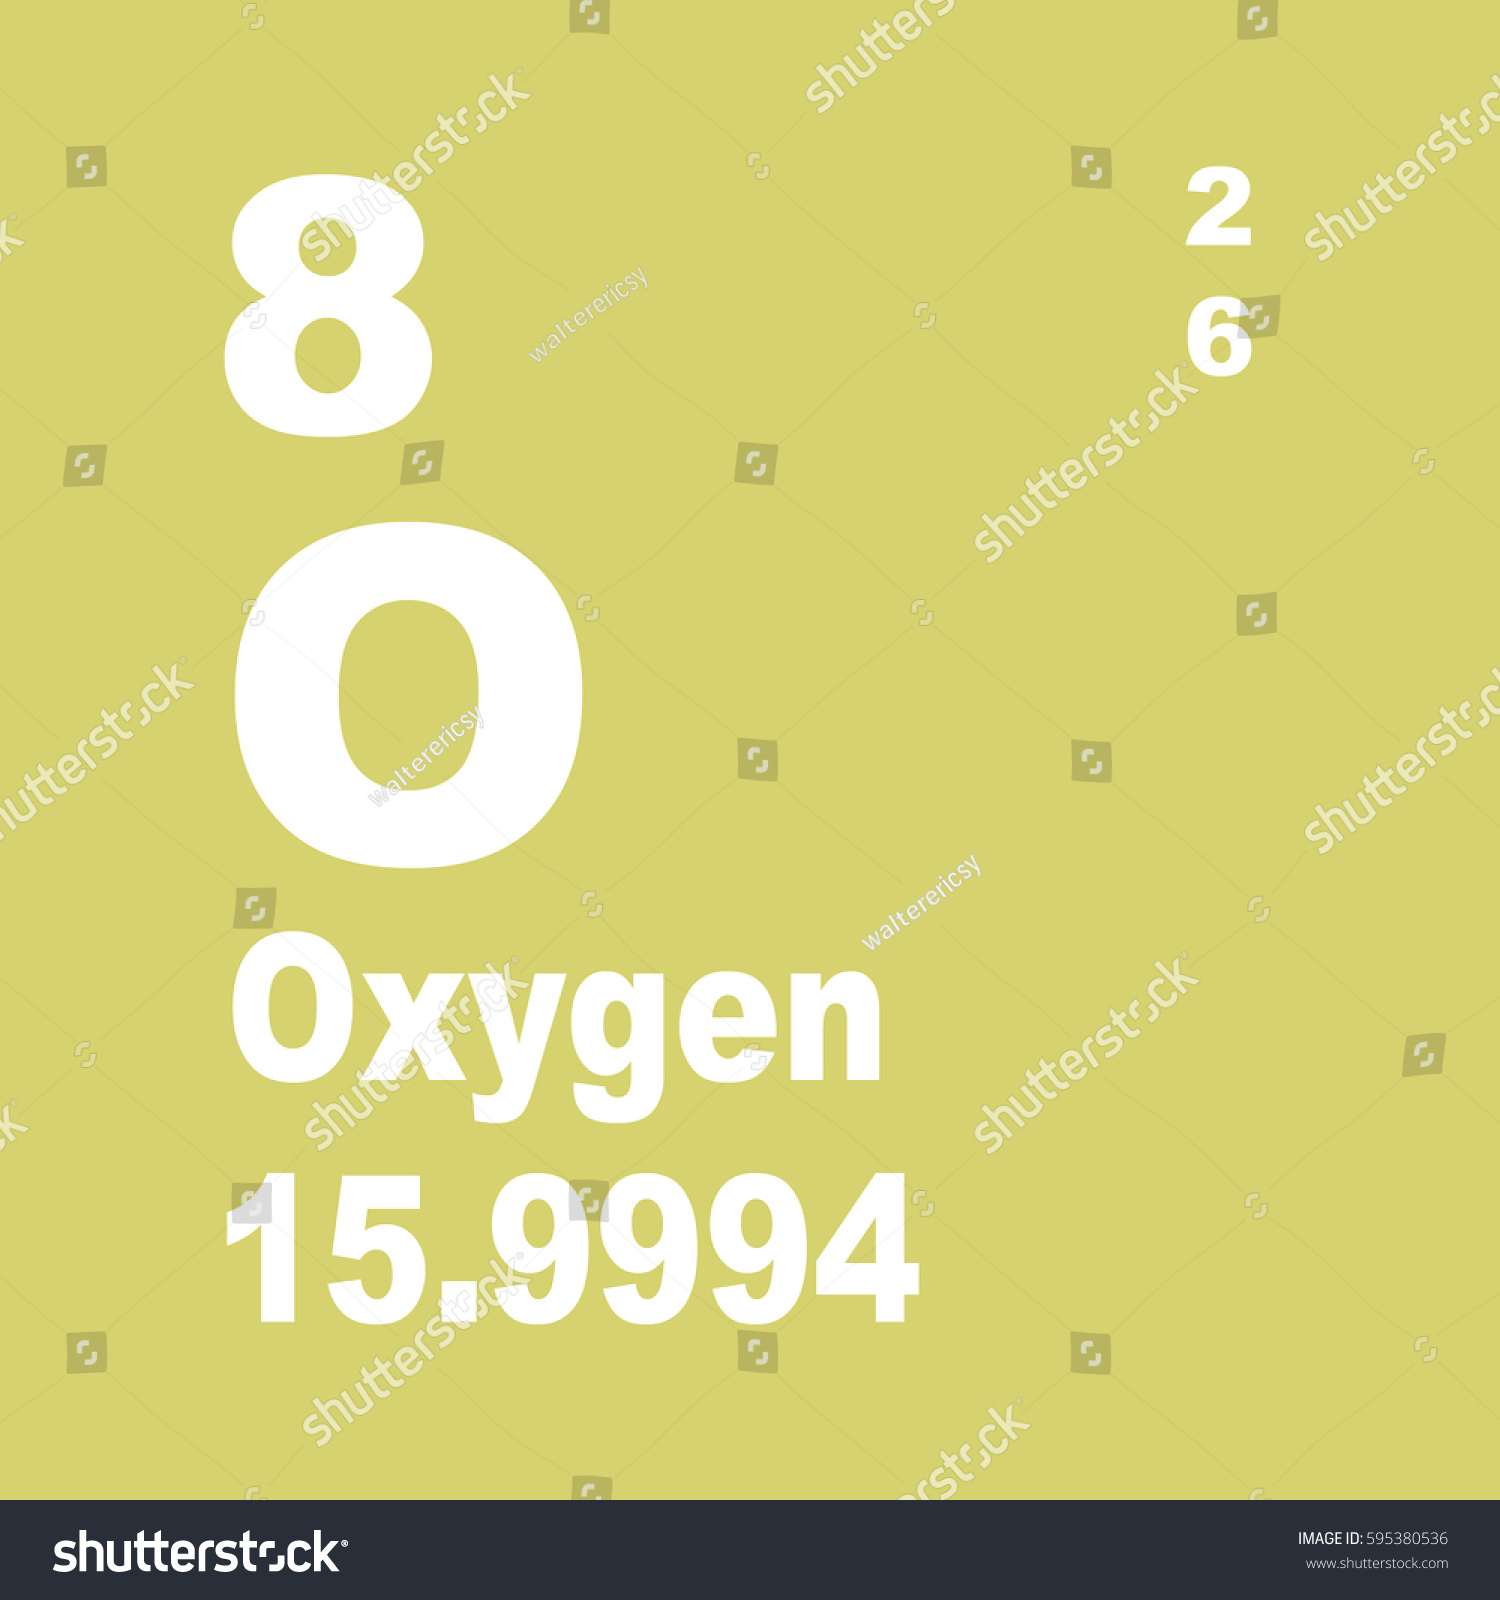 Oxygen periodic table elements stock illustration 595380536 oxygen periodic table of elements gamestrikefo Images